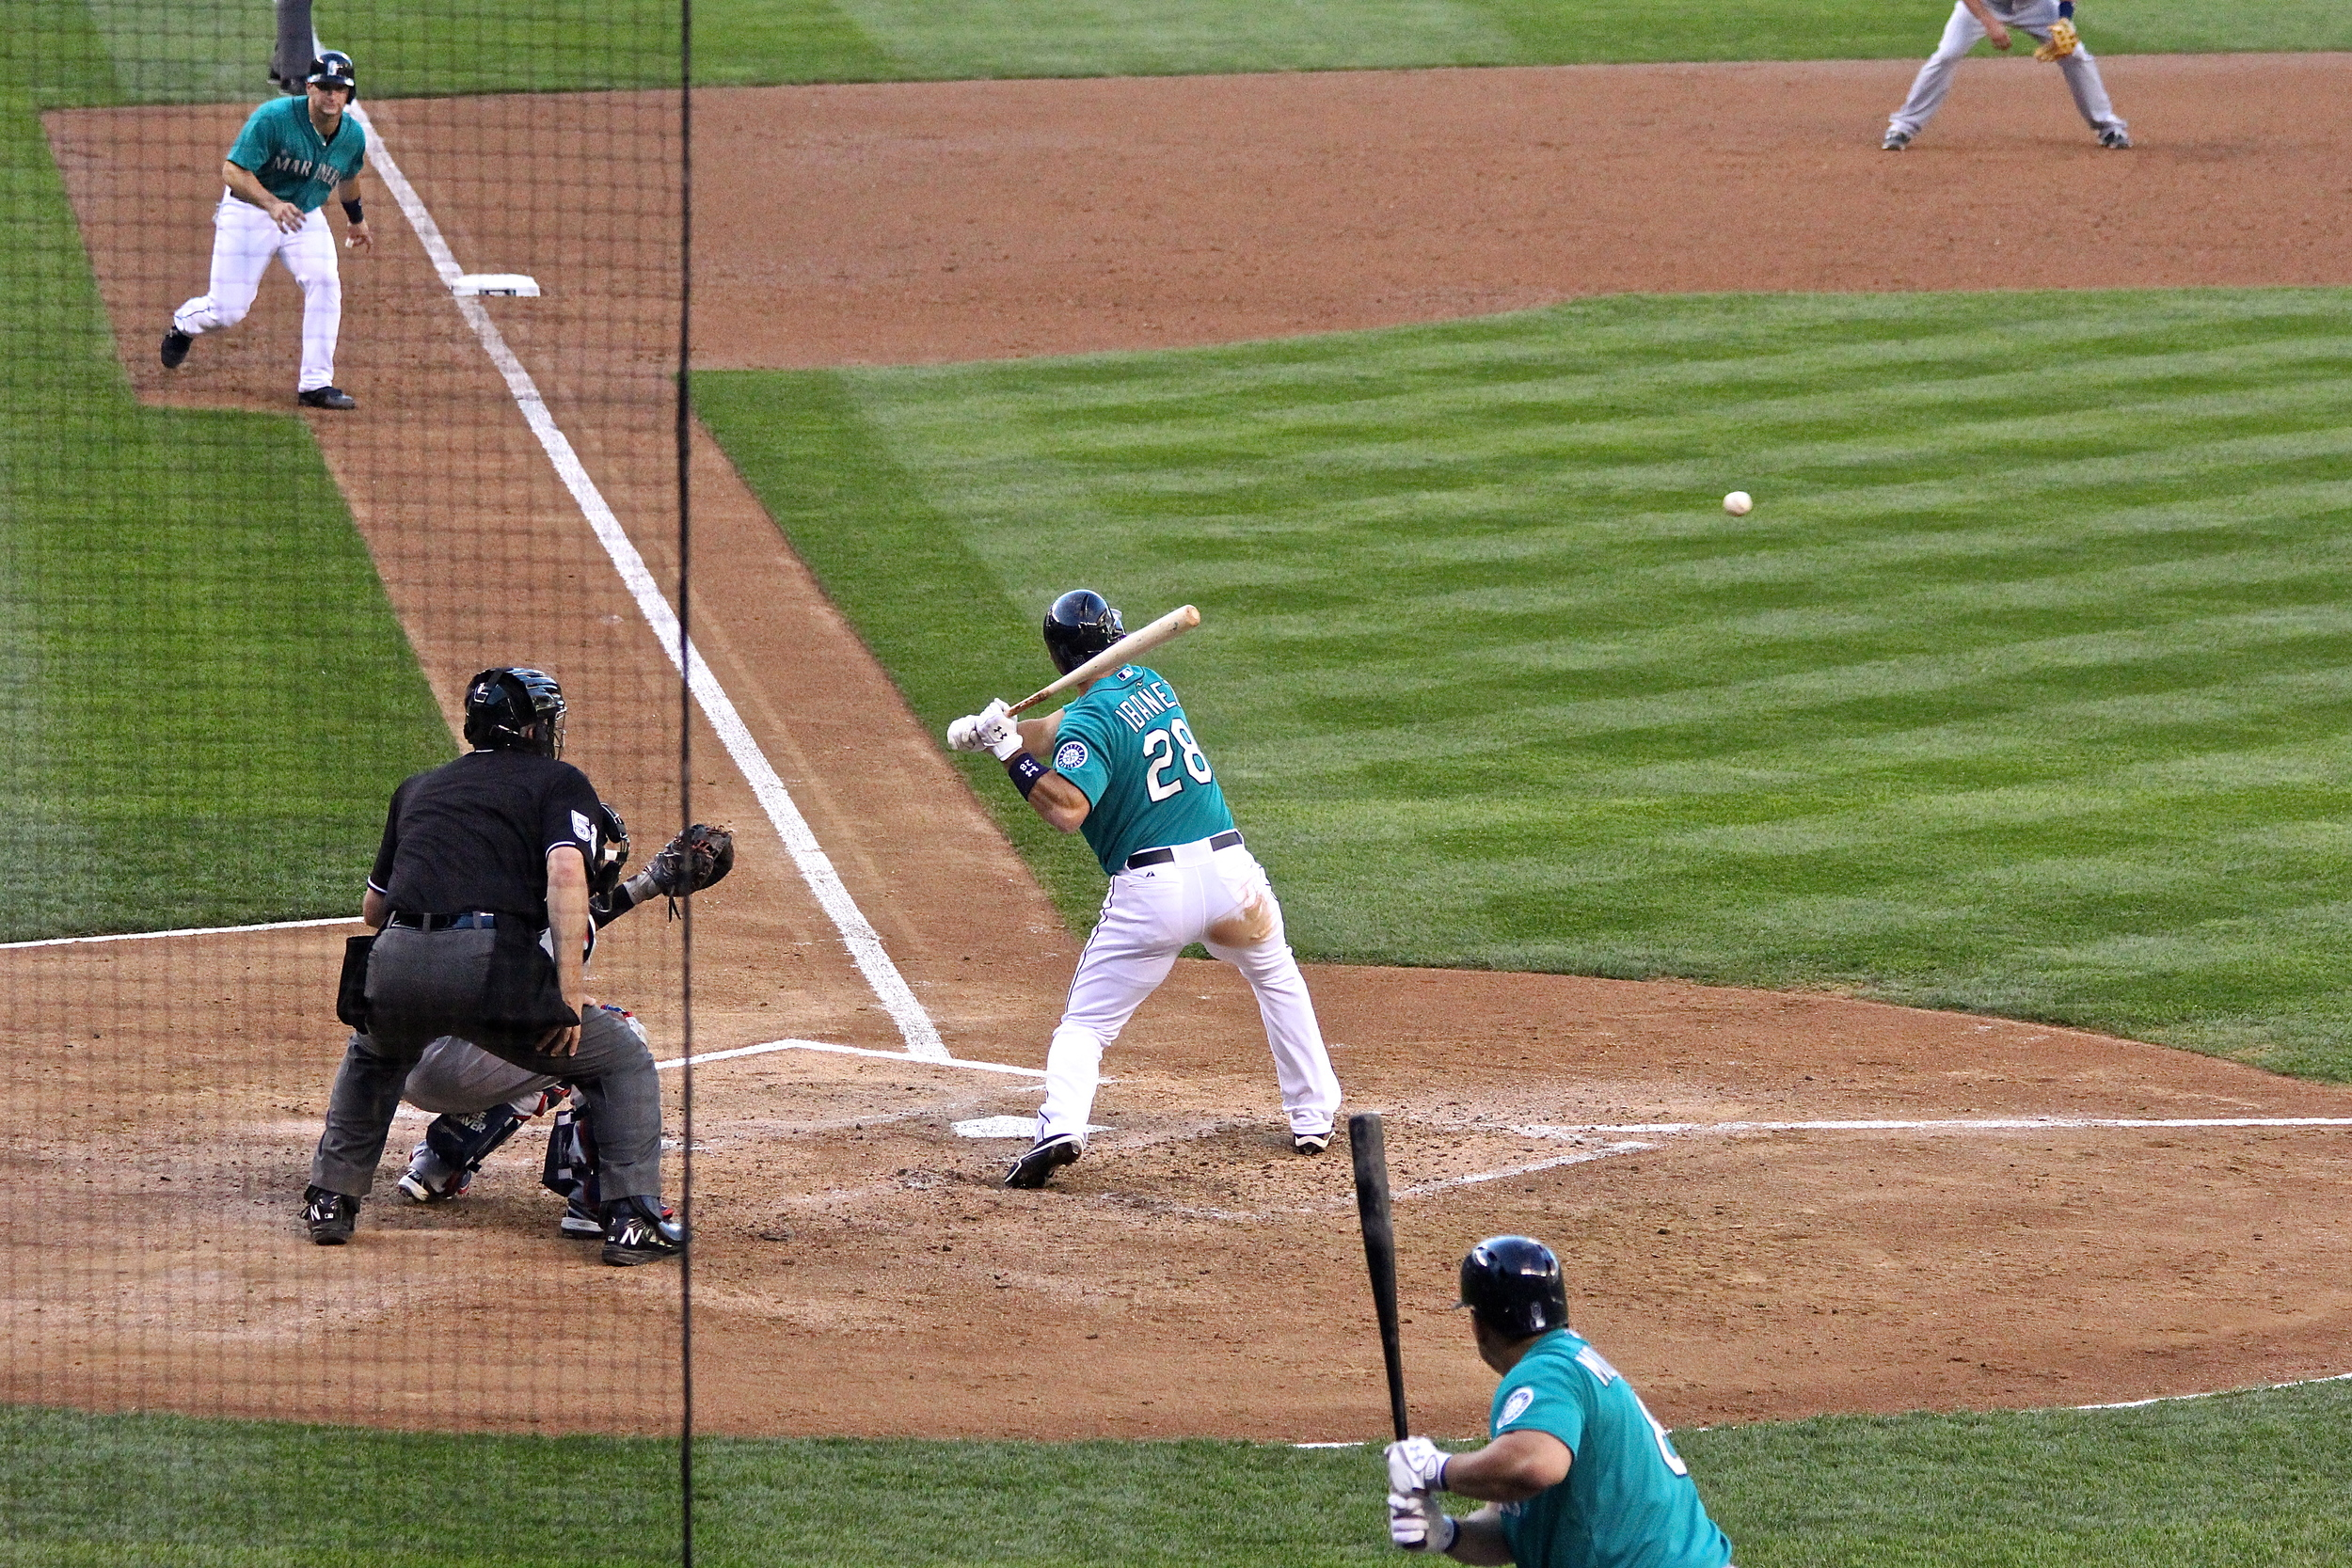 Raul Ibanez at the plate